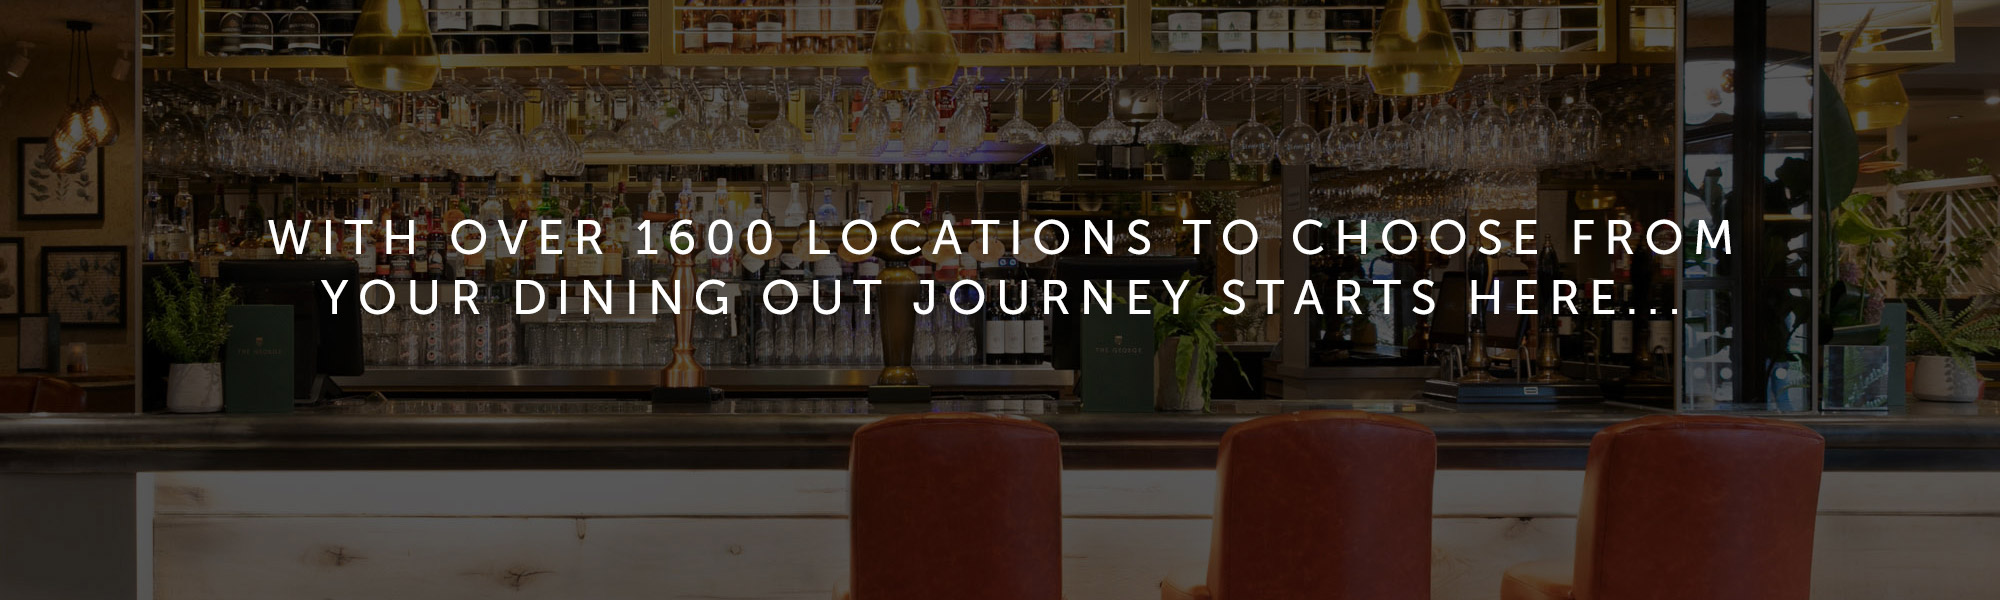 With over 1600 locations to choose from your dining out journey starts here ...